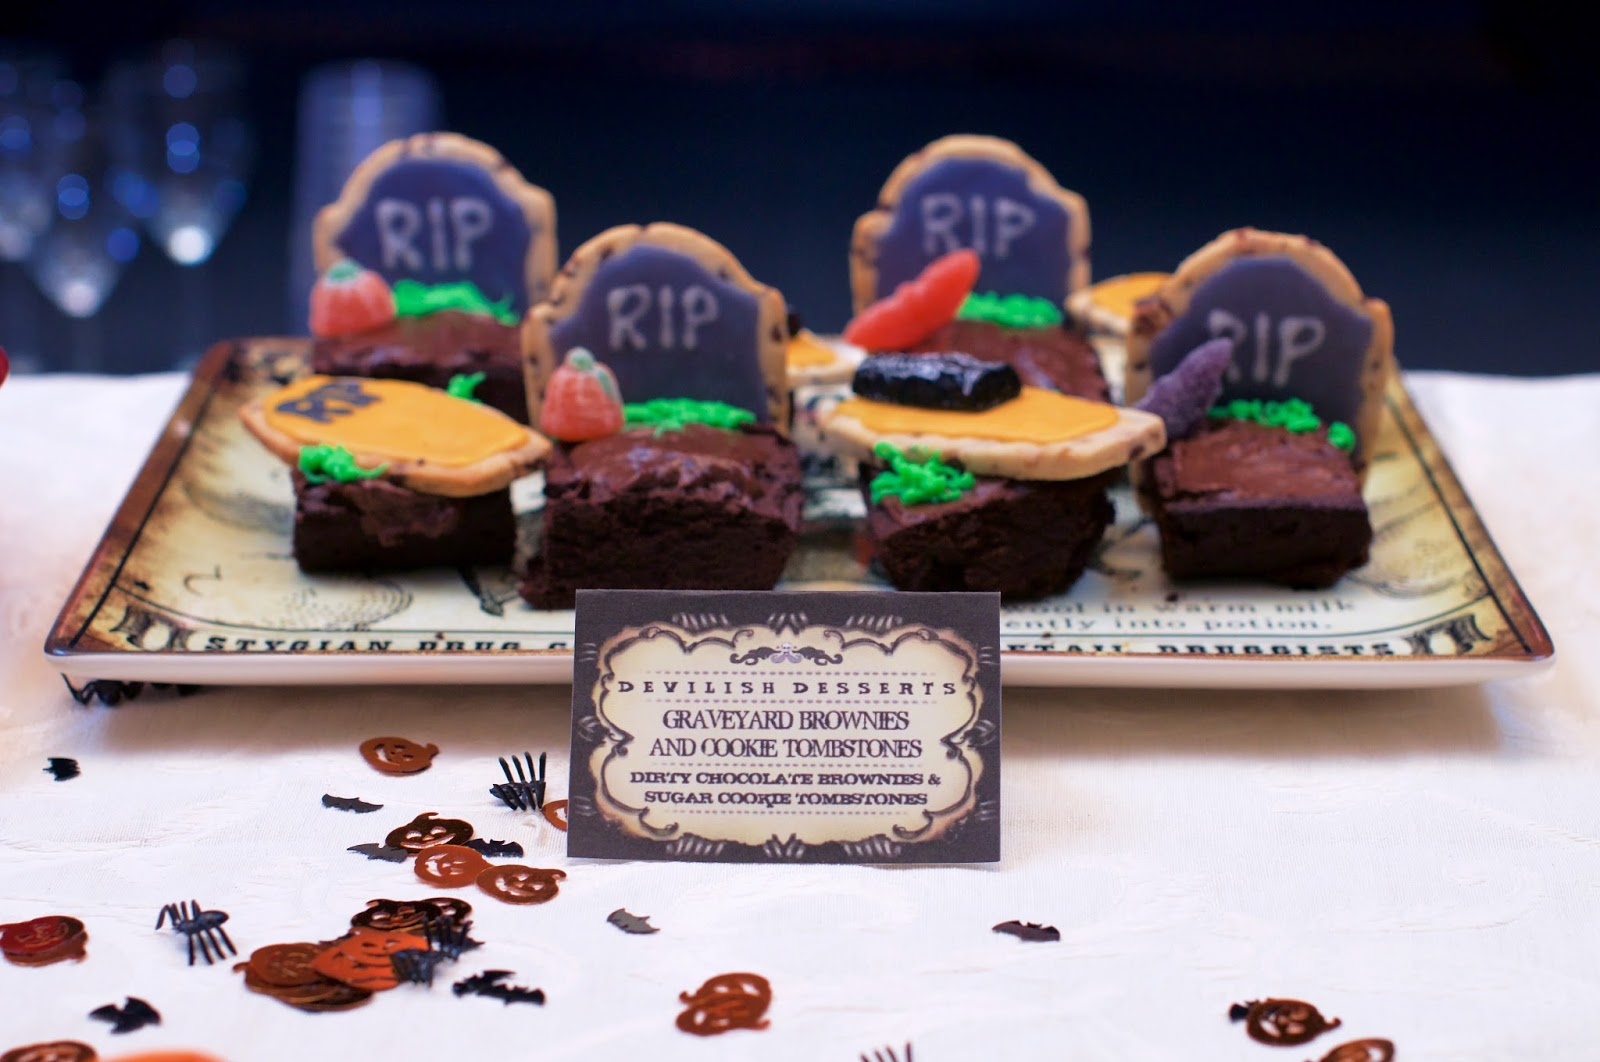 Boo-tiful Cookies and Brownies!